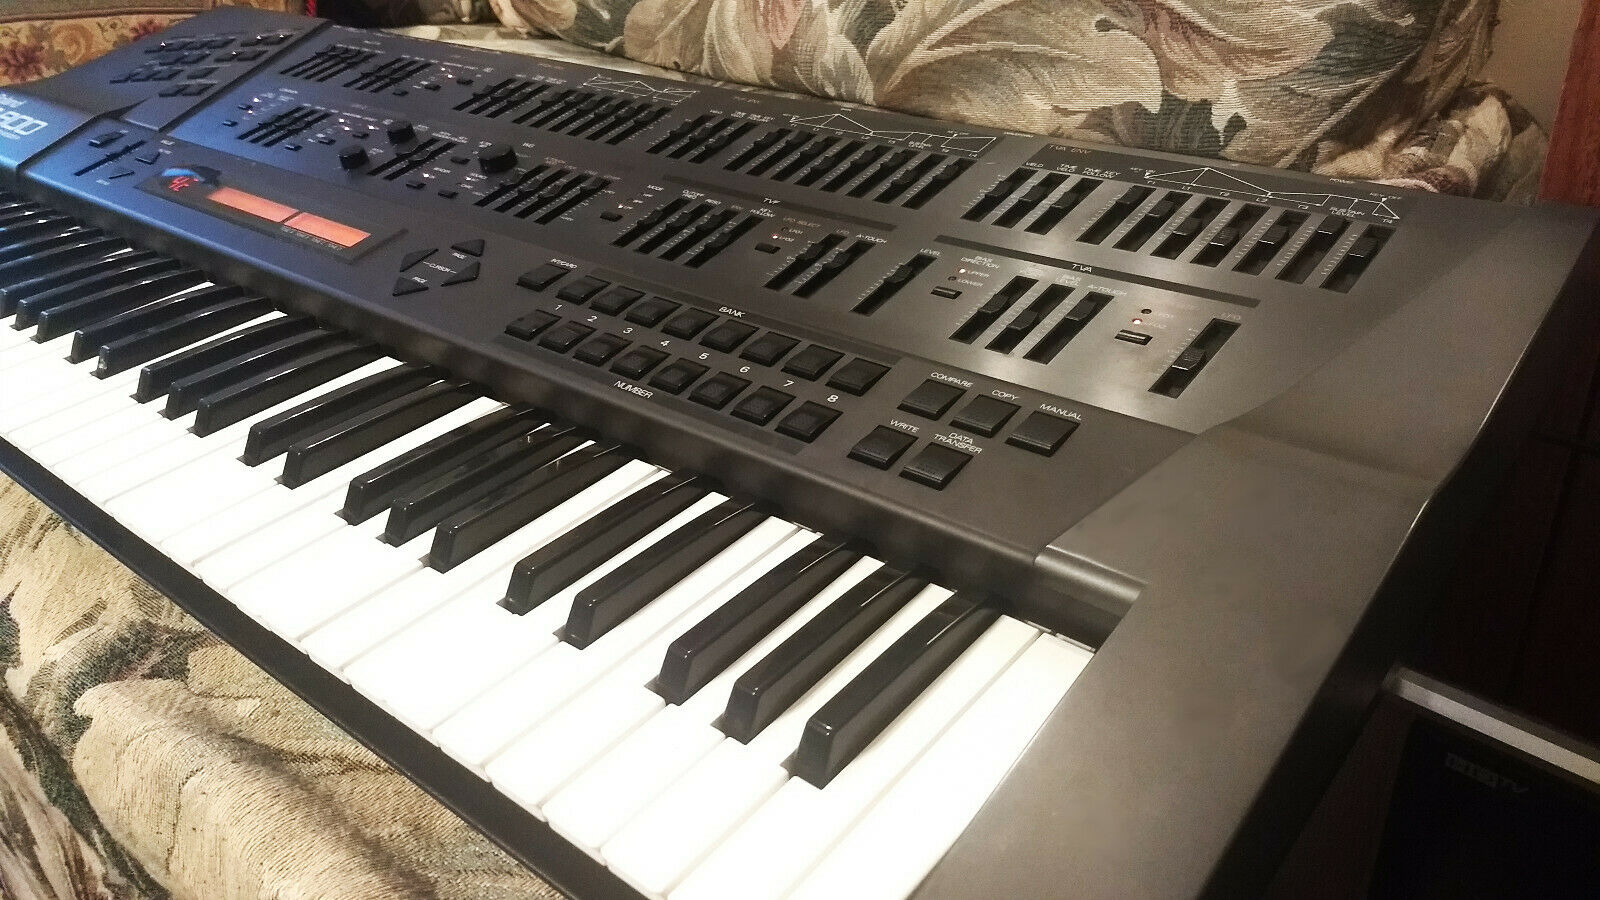 matrixsynth roland jd 800 keyboard synthesizer sn zc55195. Black Bedroom Furniture Sets. Home Design Ideas